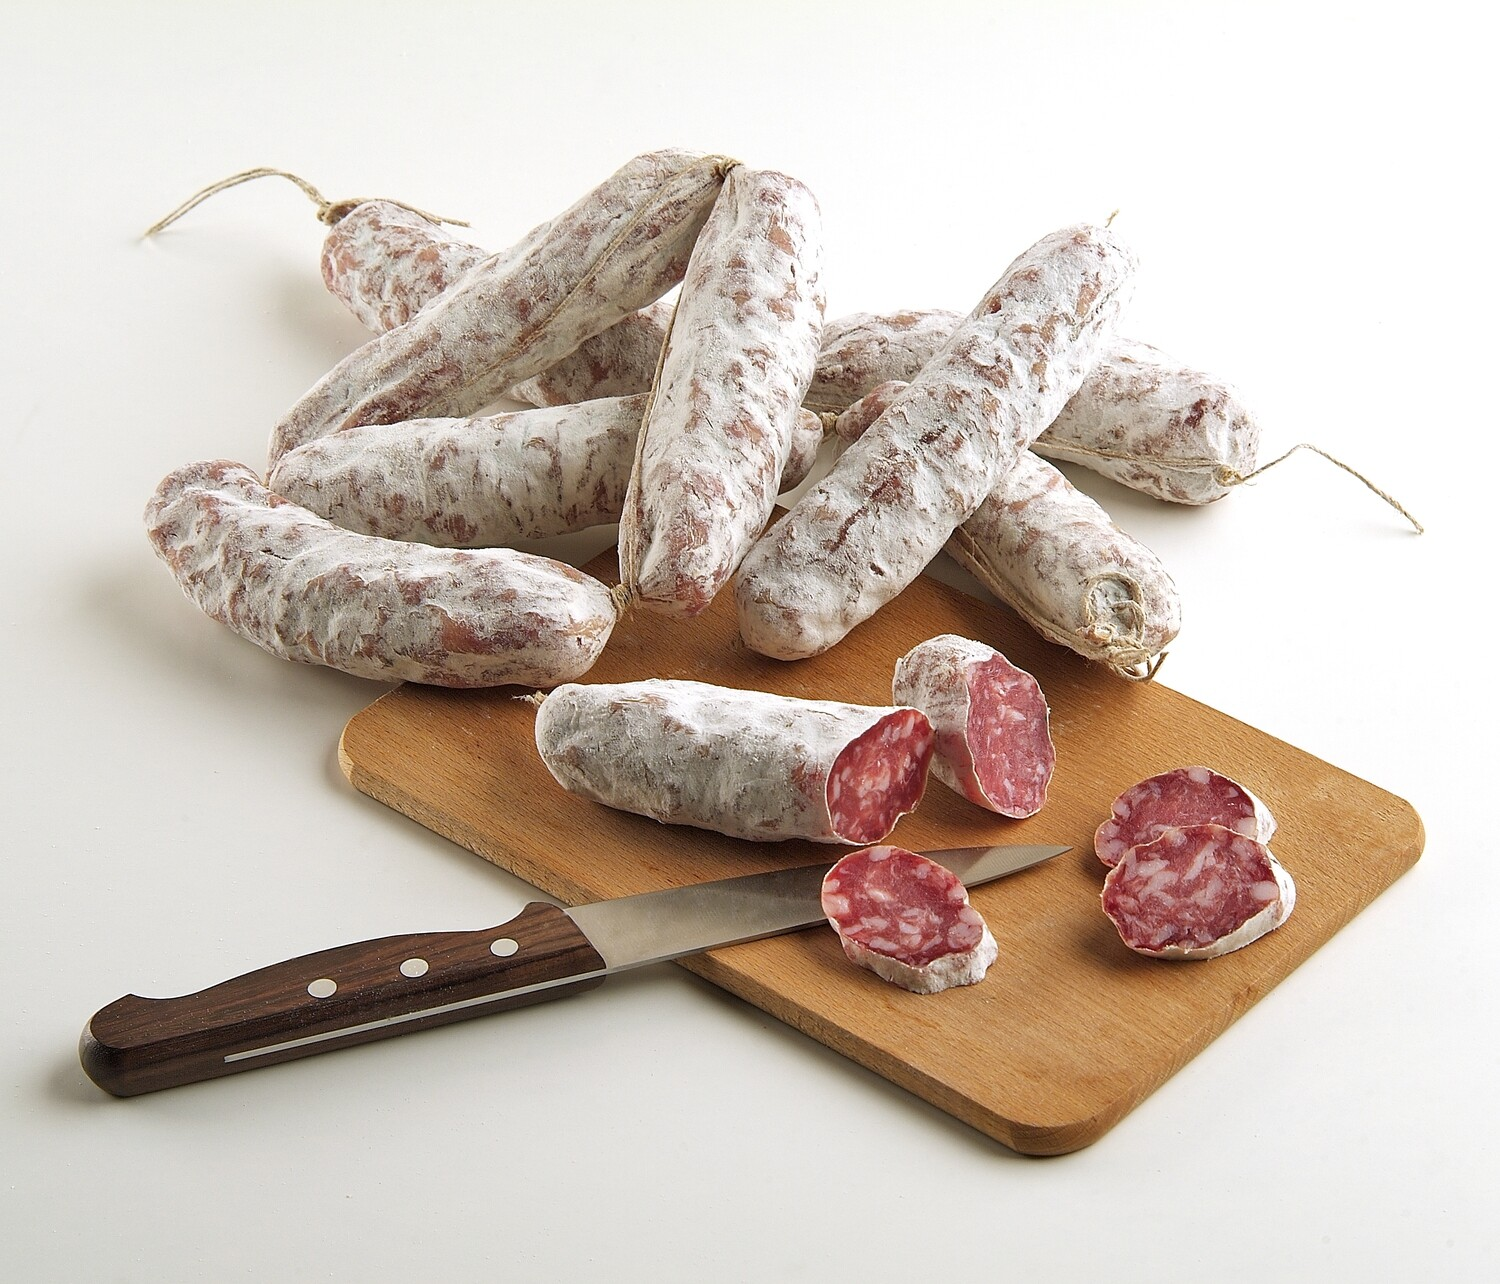 PIEMONTE SALAME CLASSICS SELECTION BOX - 7 Pieces